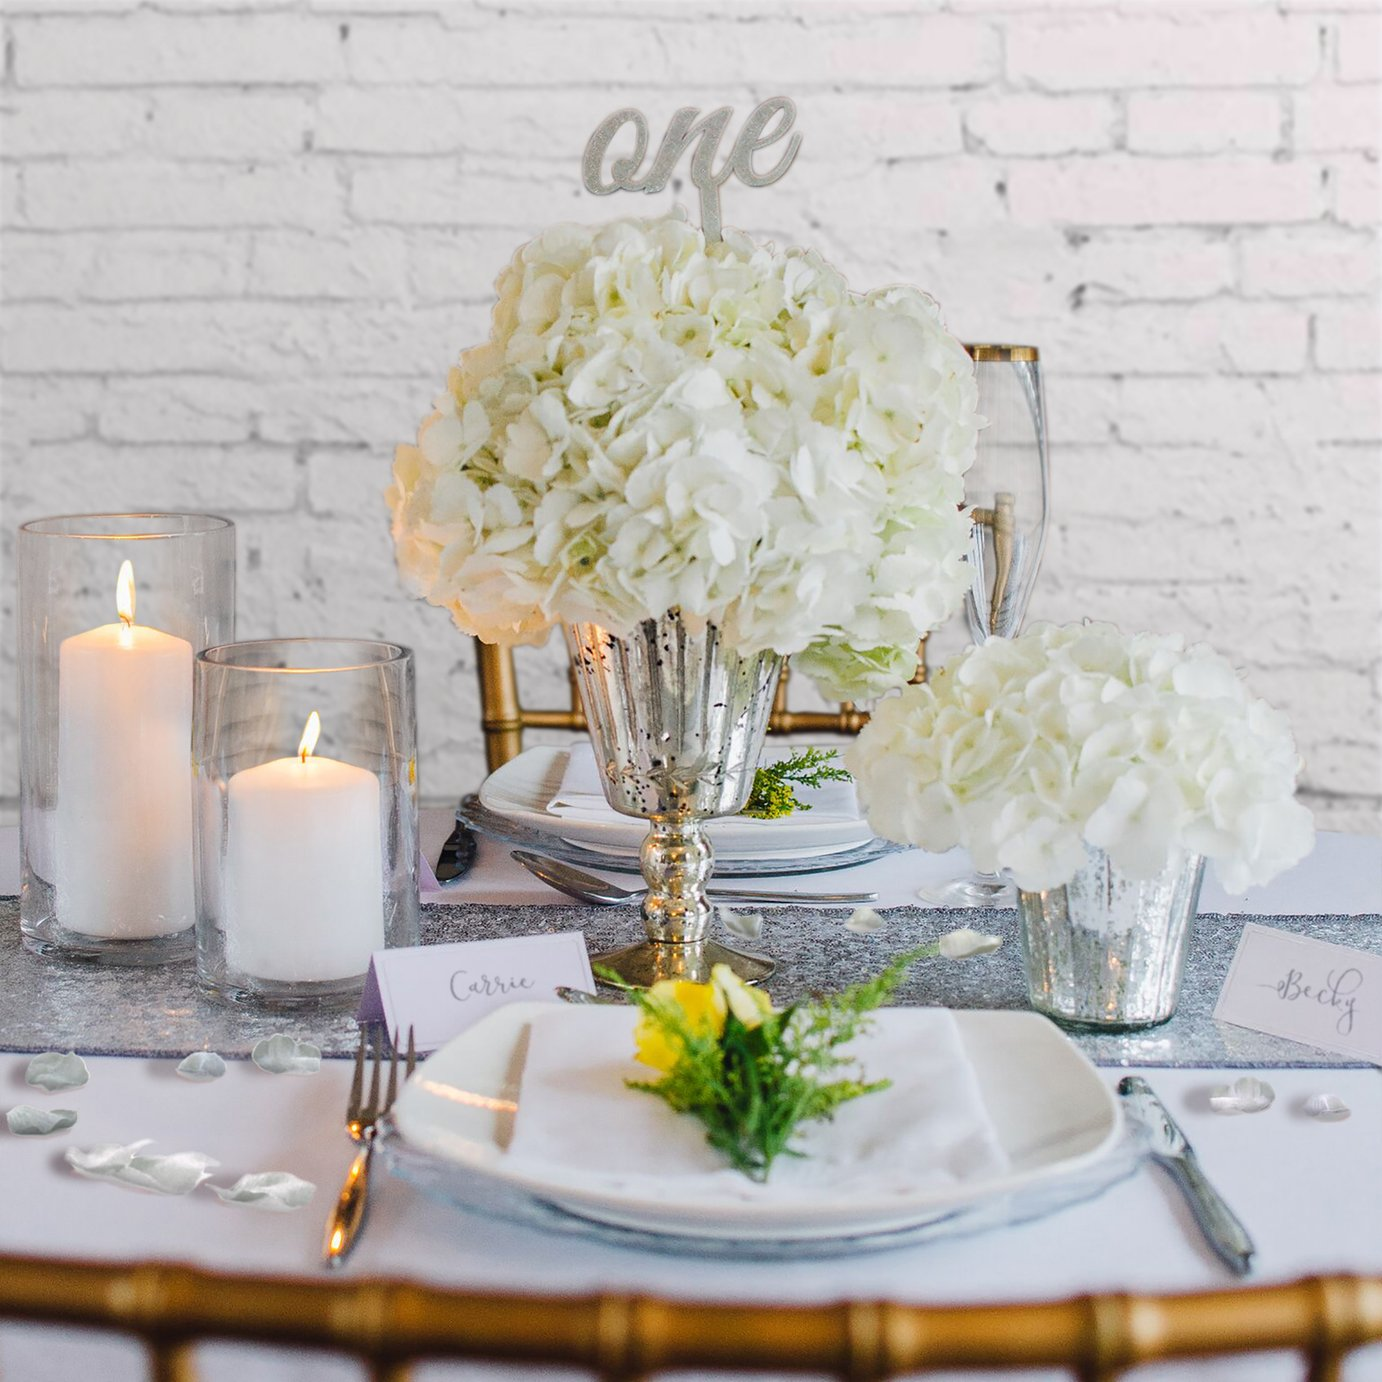 White Elegance Luxury Wedding Centerpiece Set